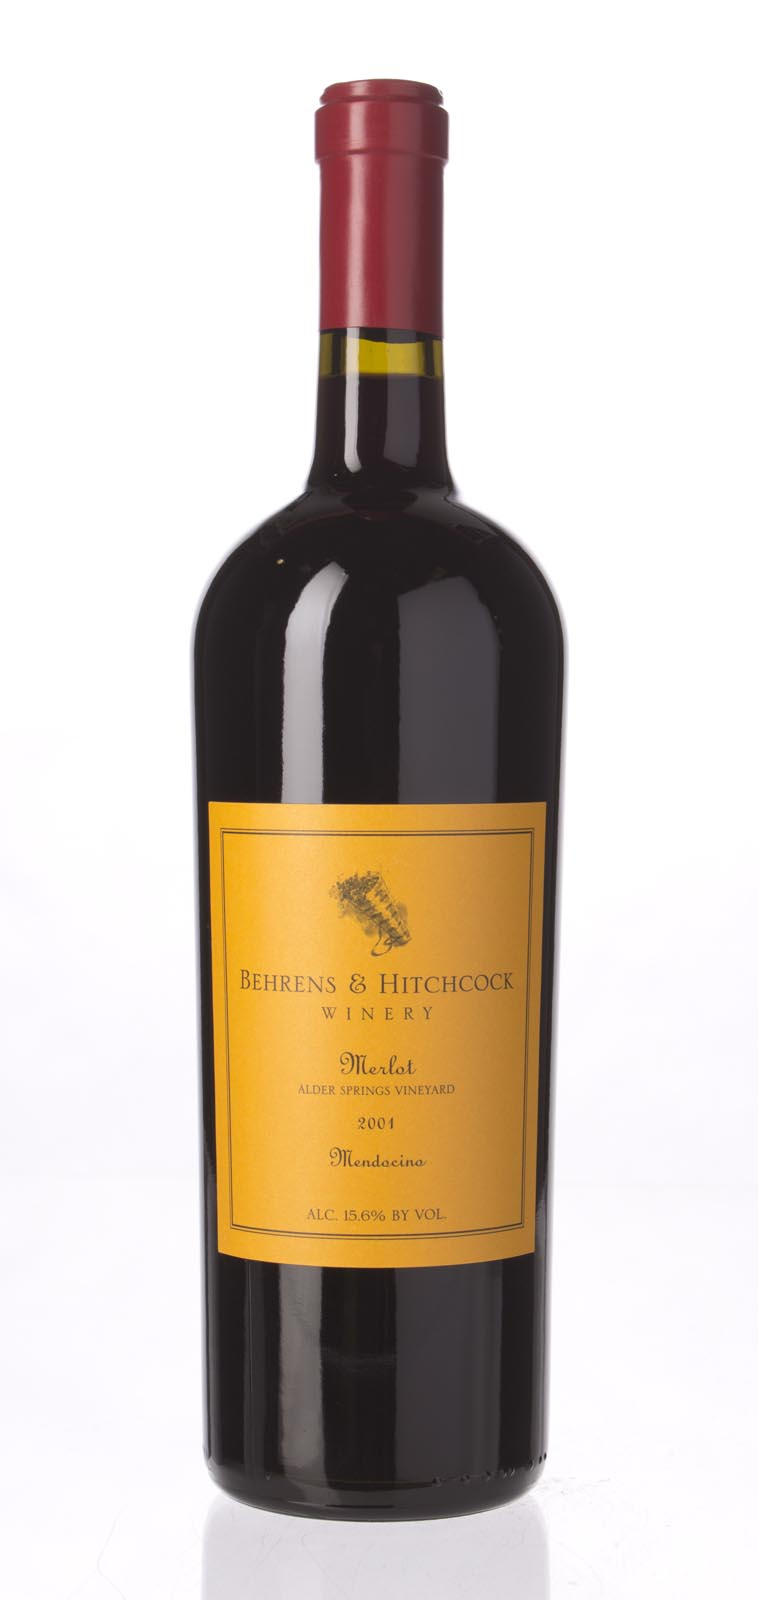 Behrens & Hitchcock Merlot Alder Springs Vineyard 2001, 750mL (ST90-92) from The BPW - Merchants of rare and fine wines.